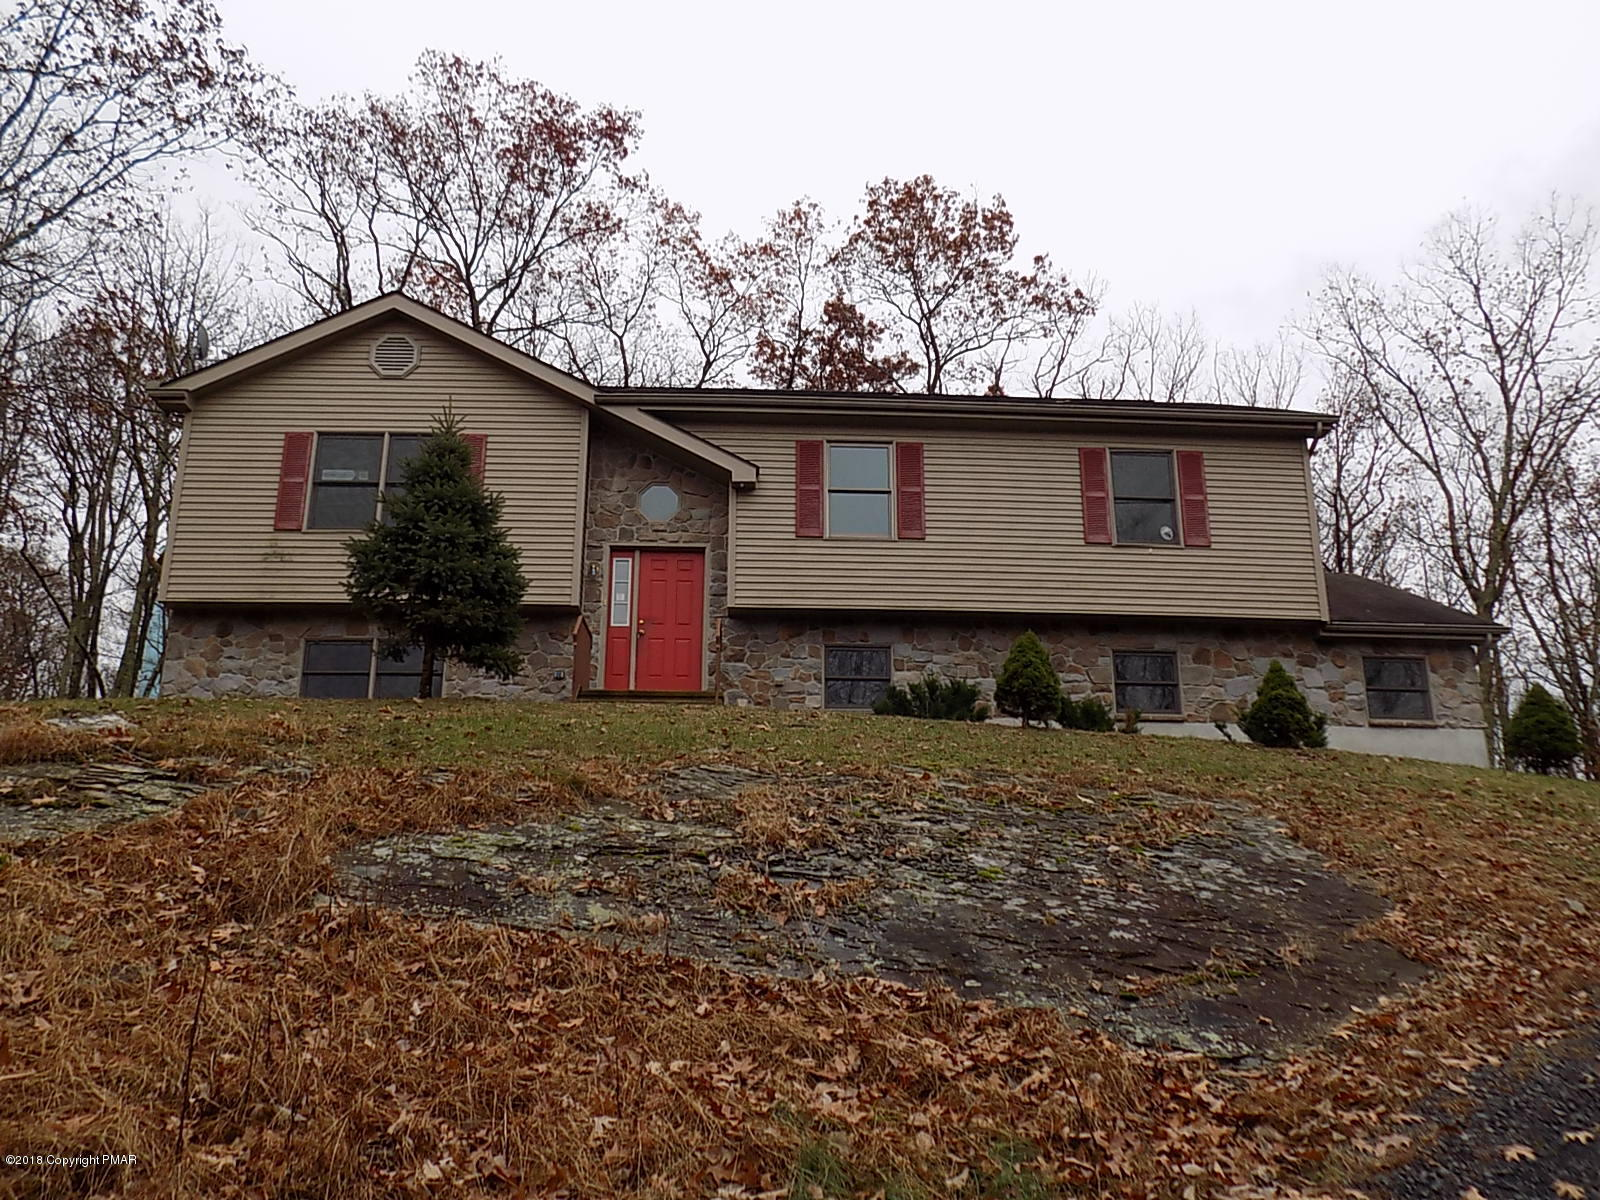 108 Summerton Cir, East Stroudsburg, PA 18301